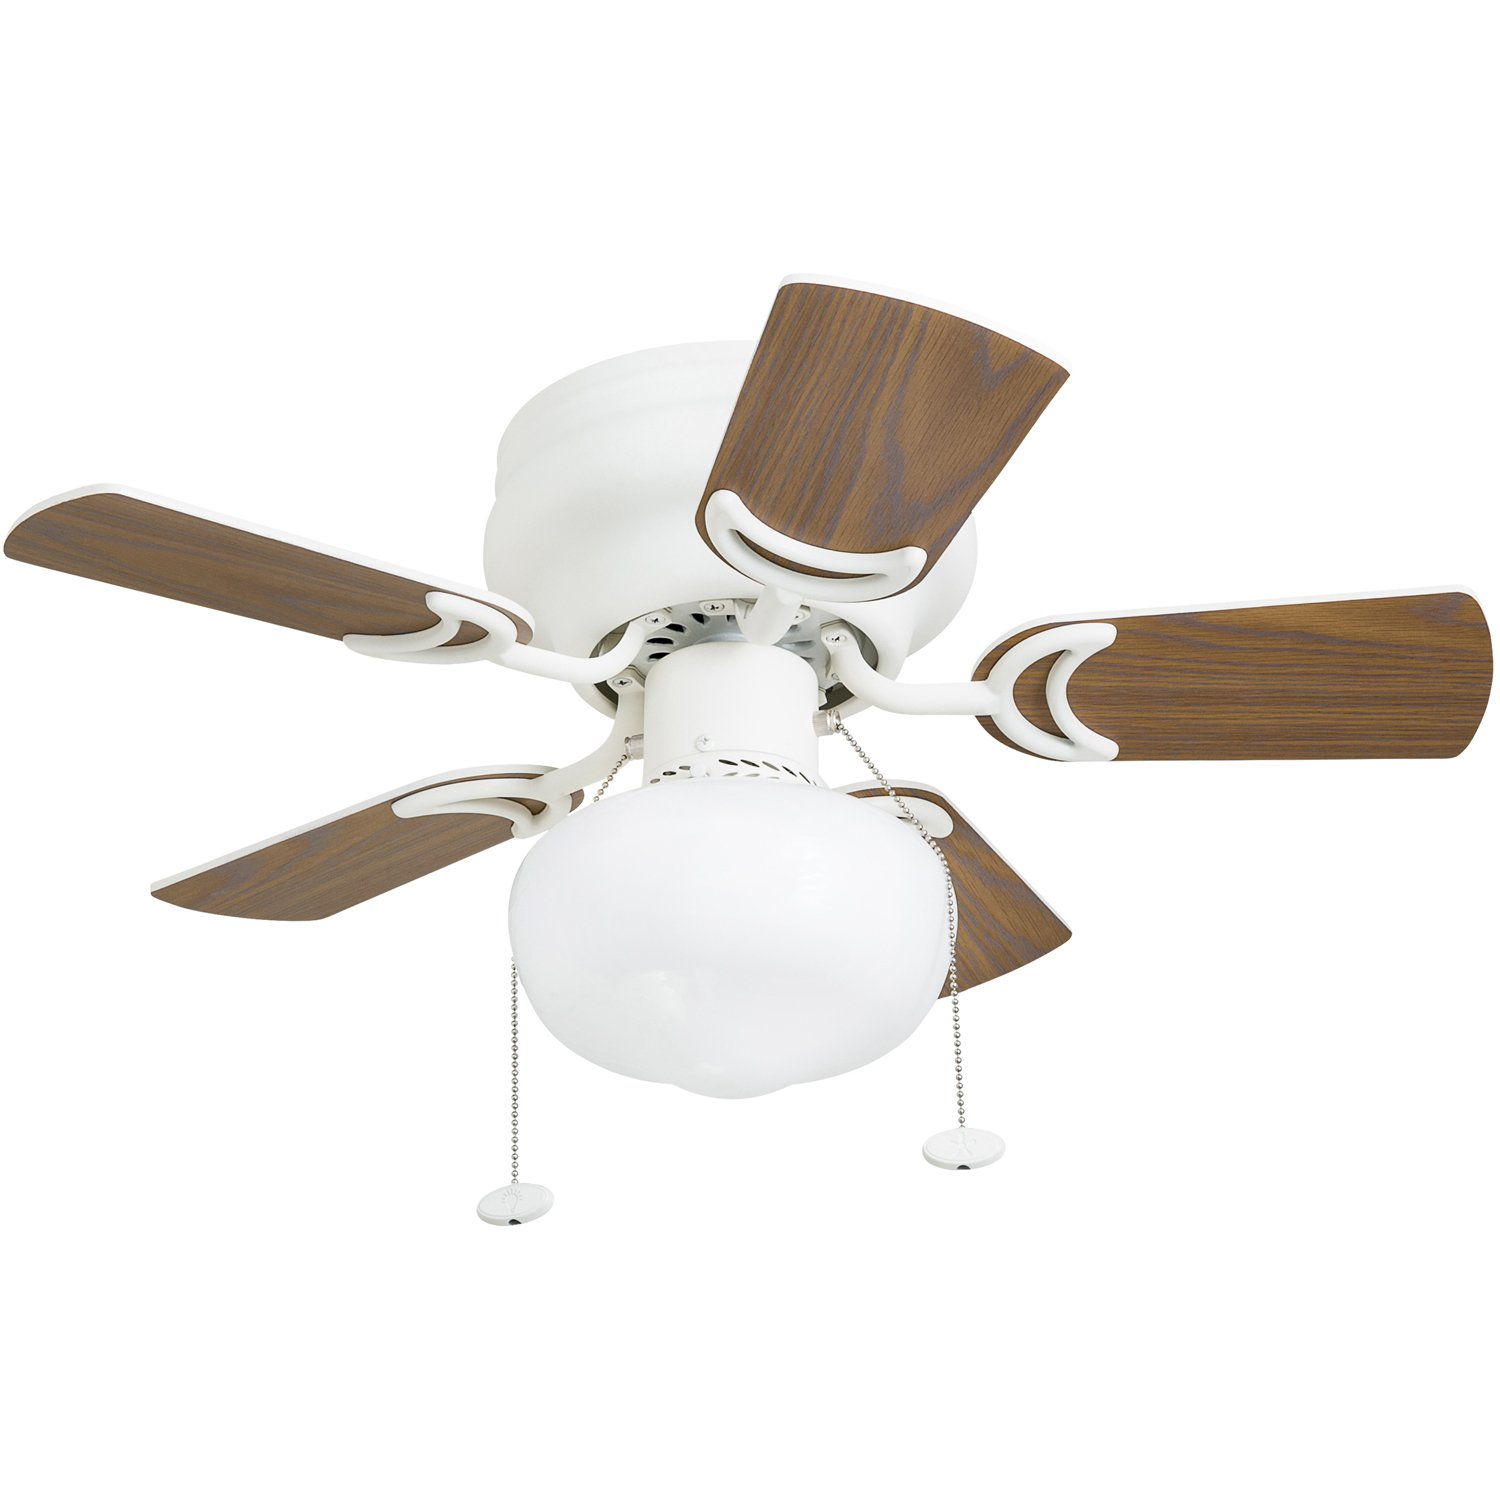 Prominence Home 41530-01 Hero 28'' Hugger Small Ceiling Fan, LED Schoolhouse Globe, Glossy White by Prominence Home (Image #7)